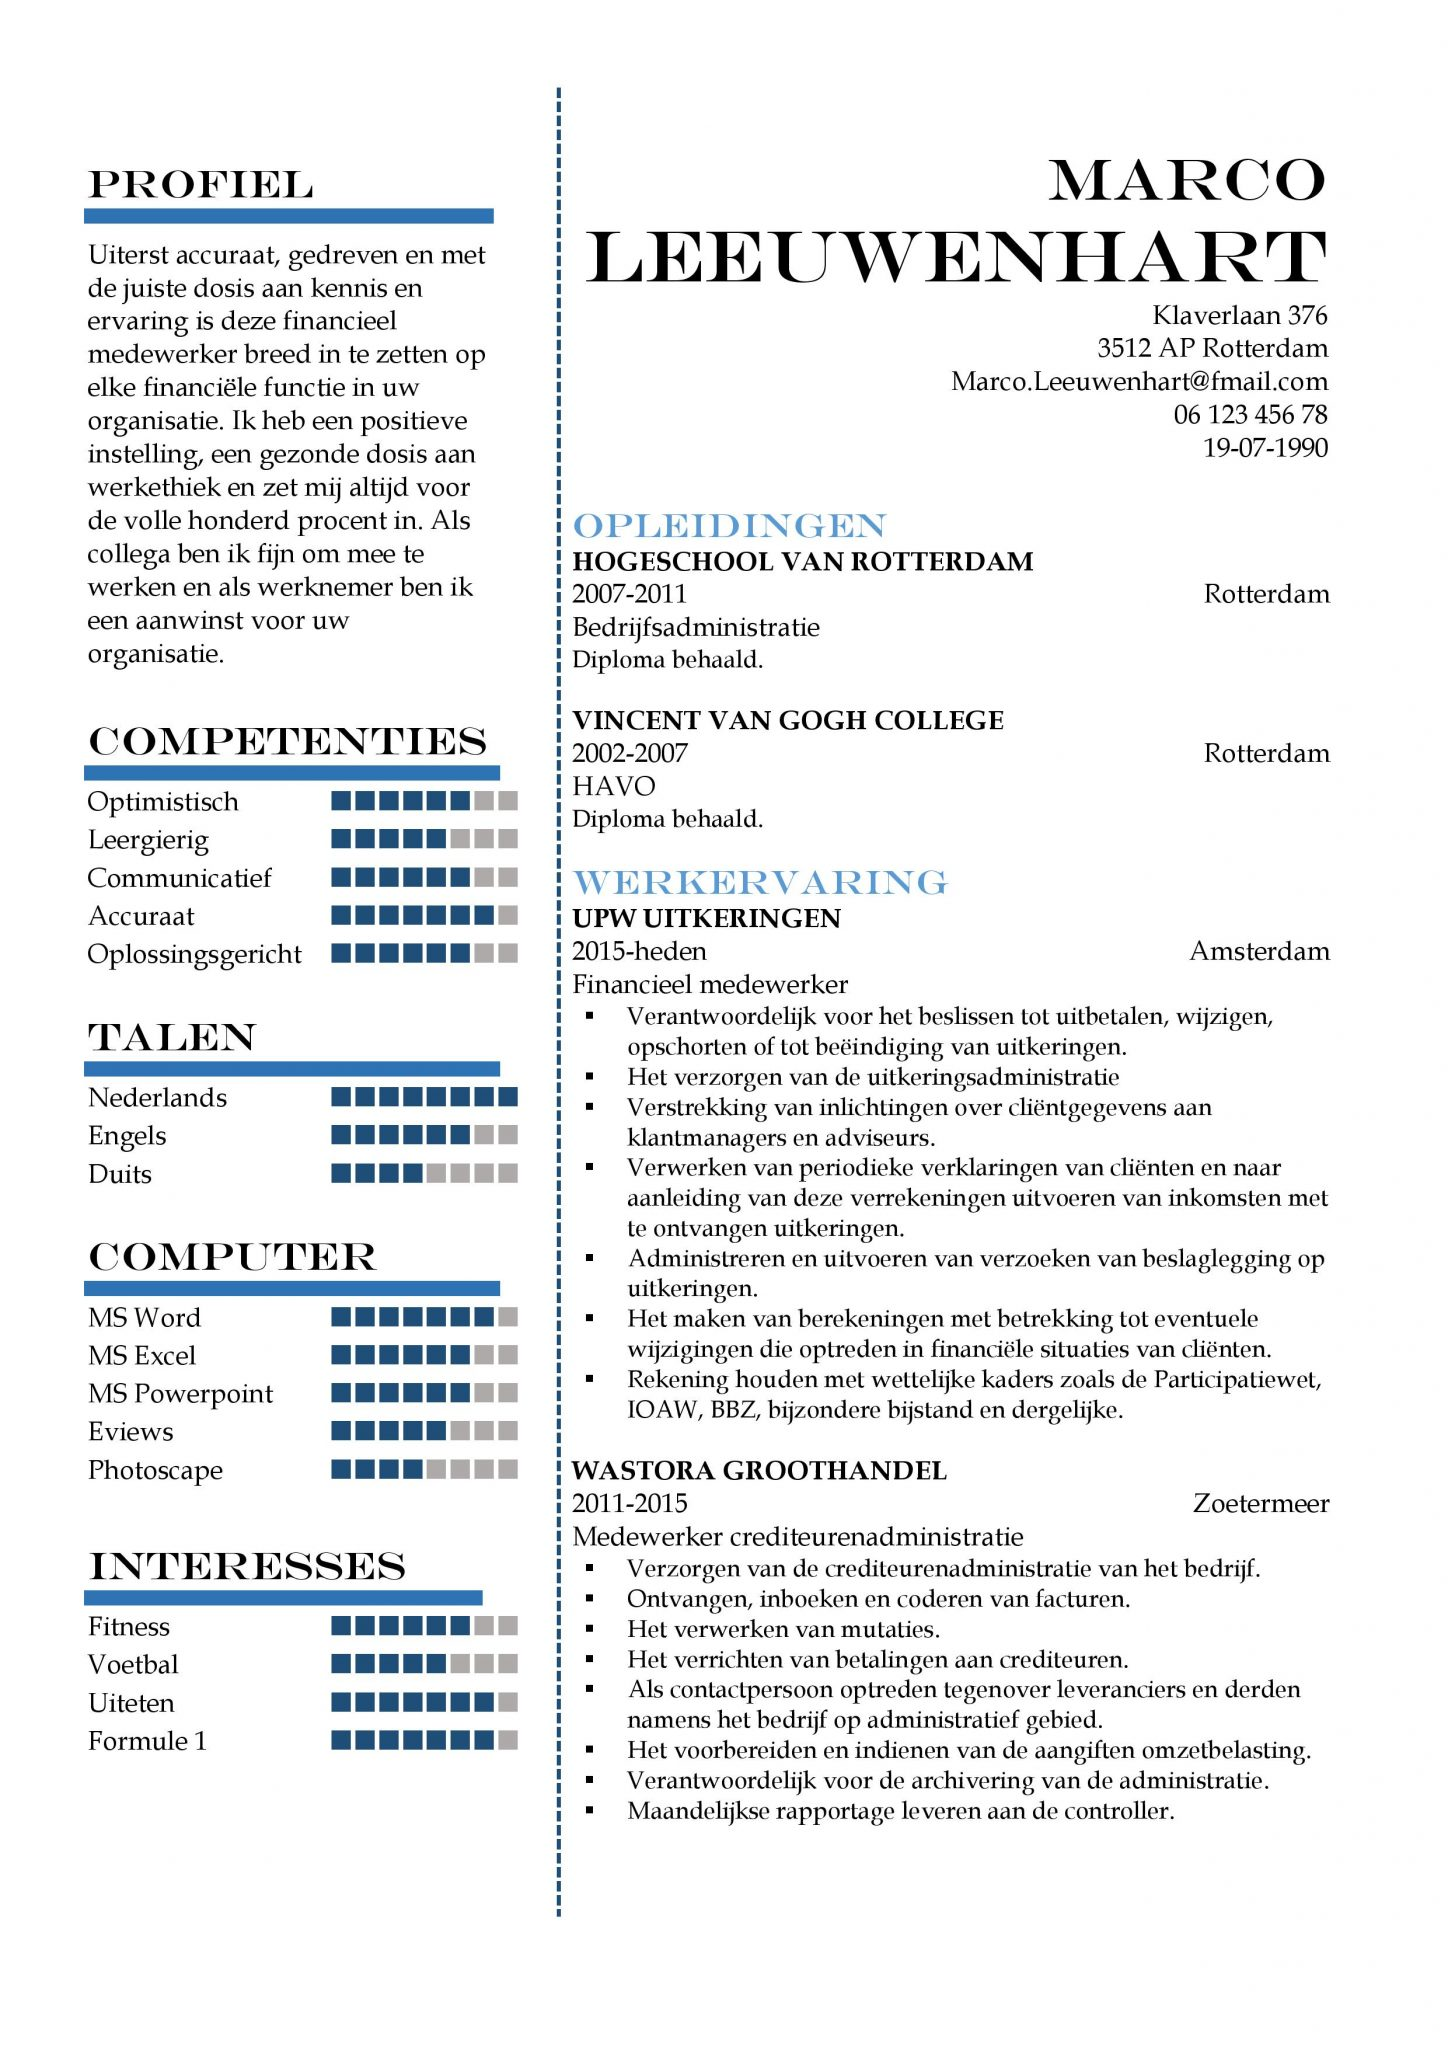 CV Sjabloon Greenwich | Top CV Template | Inhoud: Financieel